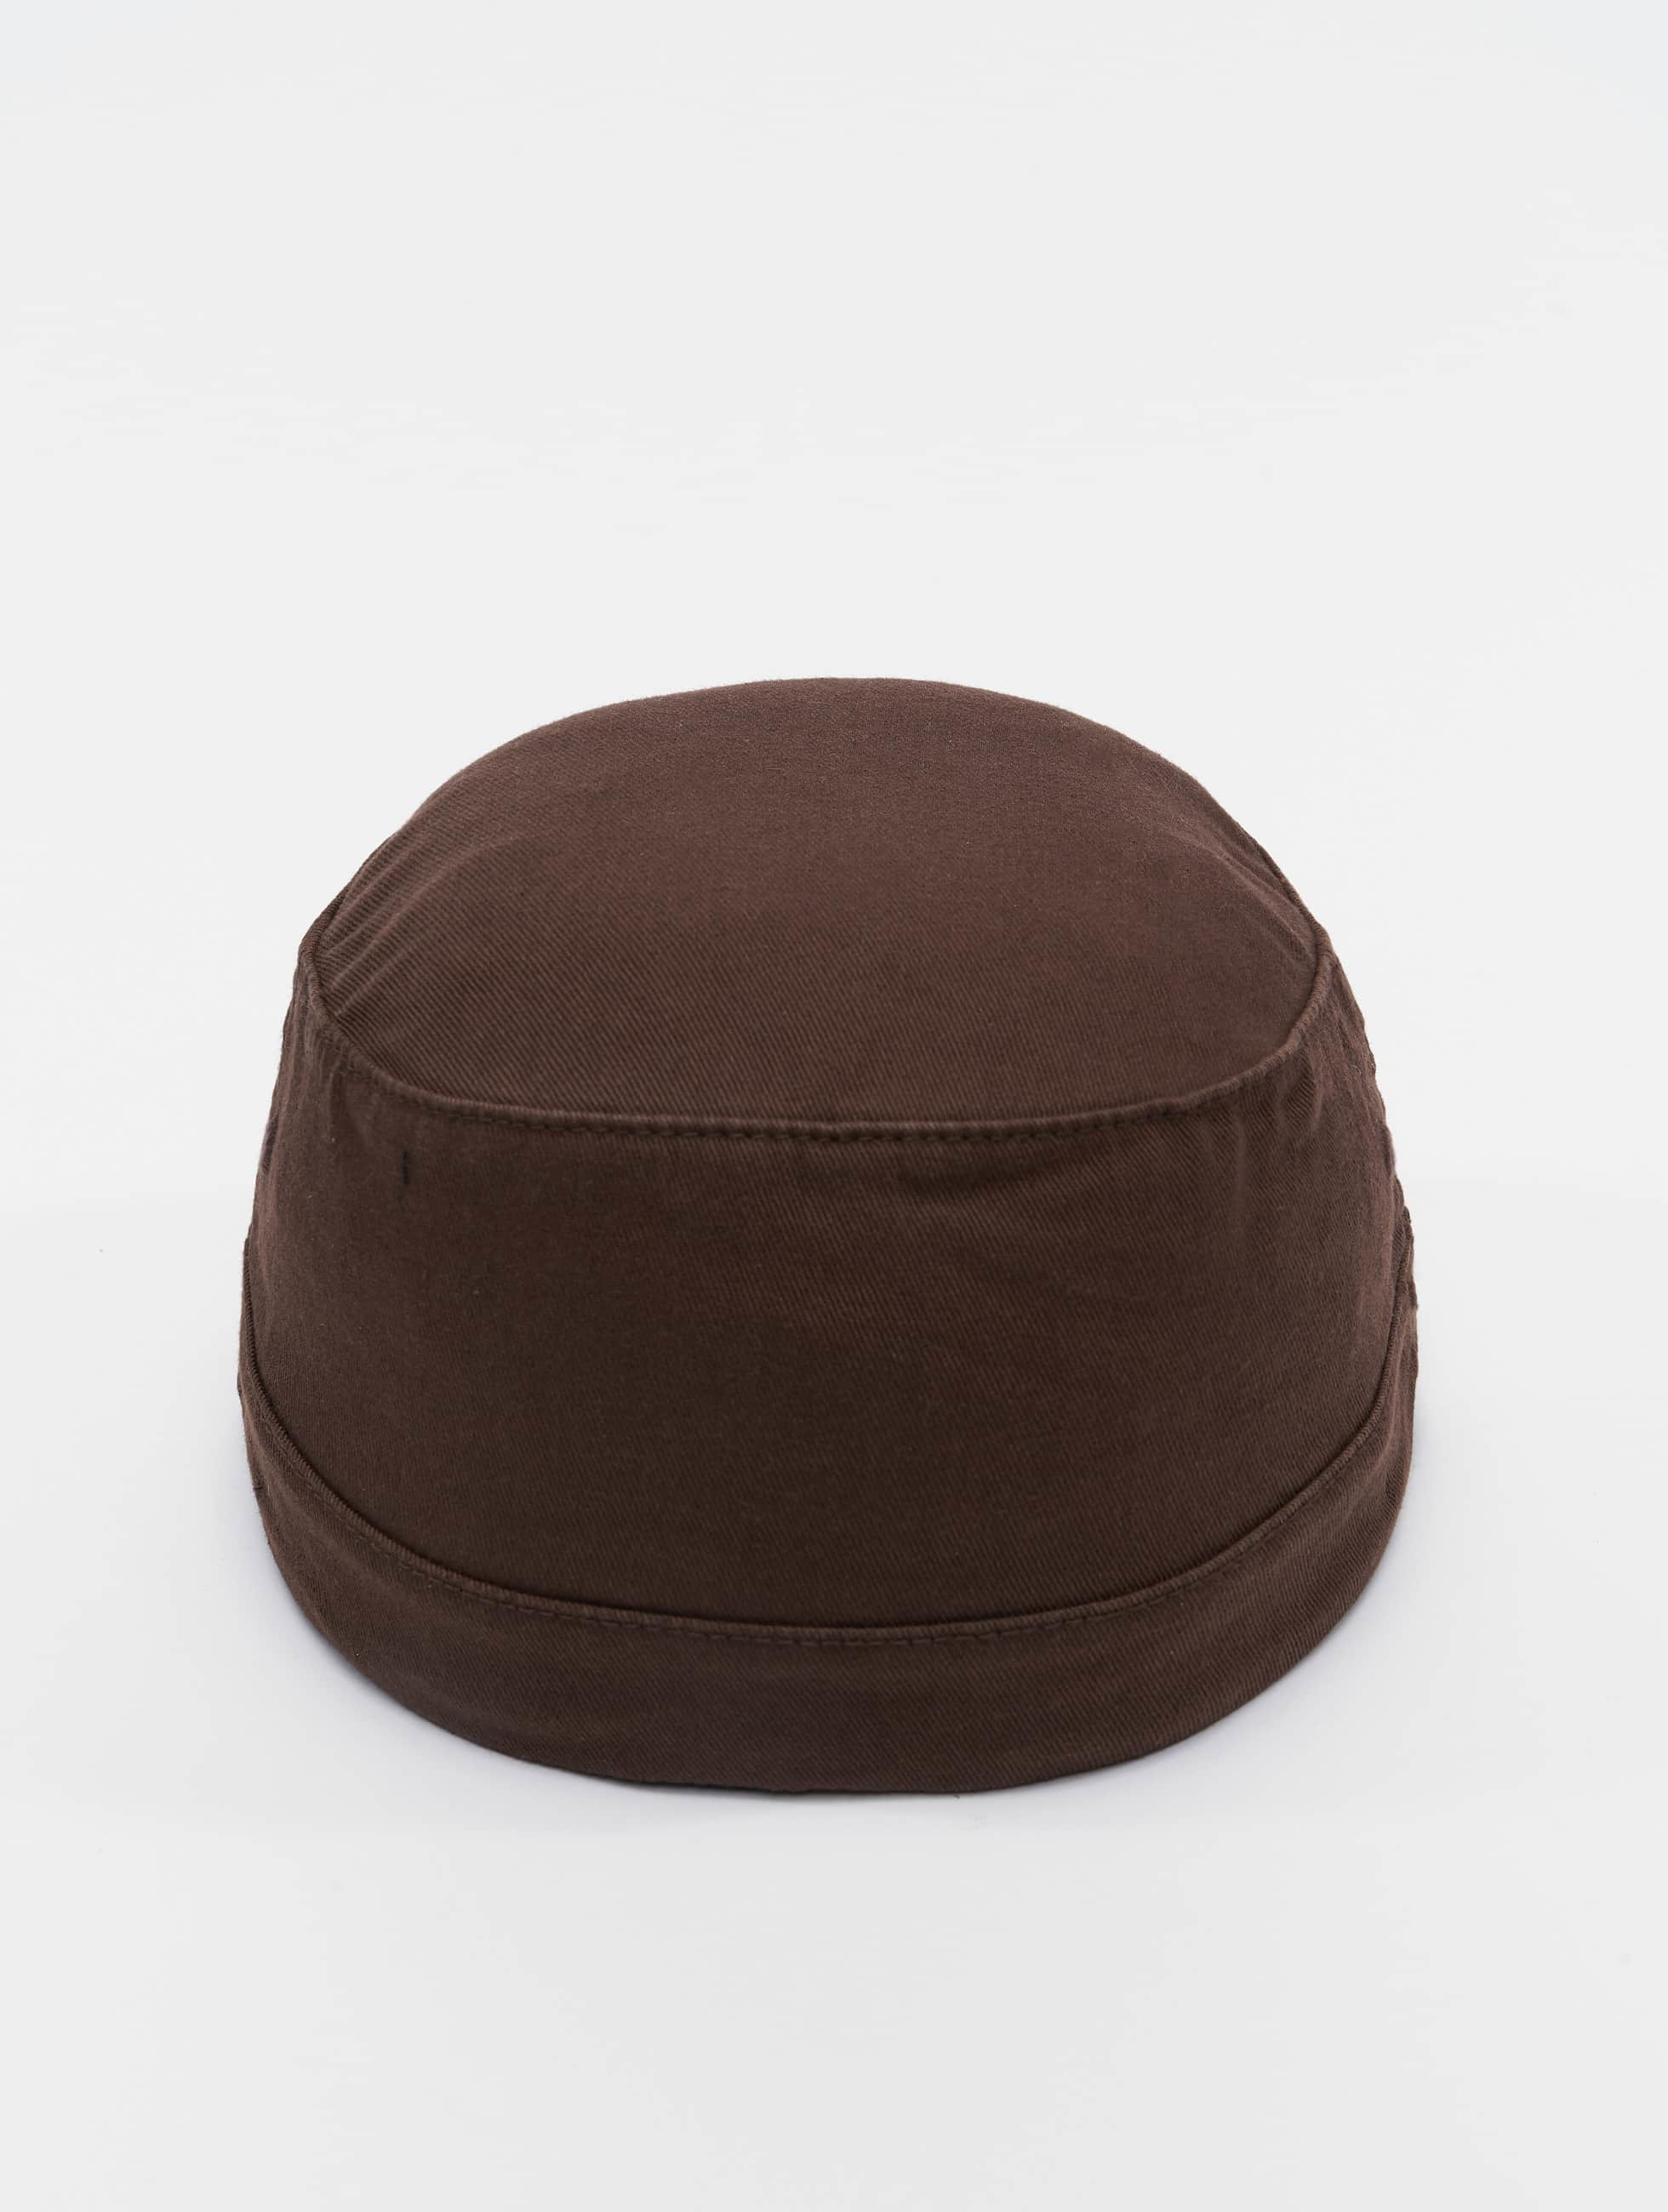 Flexfit Flexfitted Cap Top Gun Garmet Washed brown